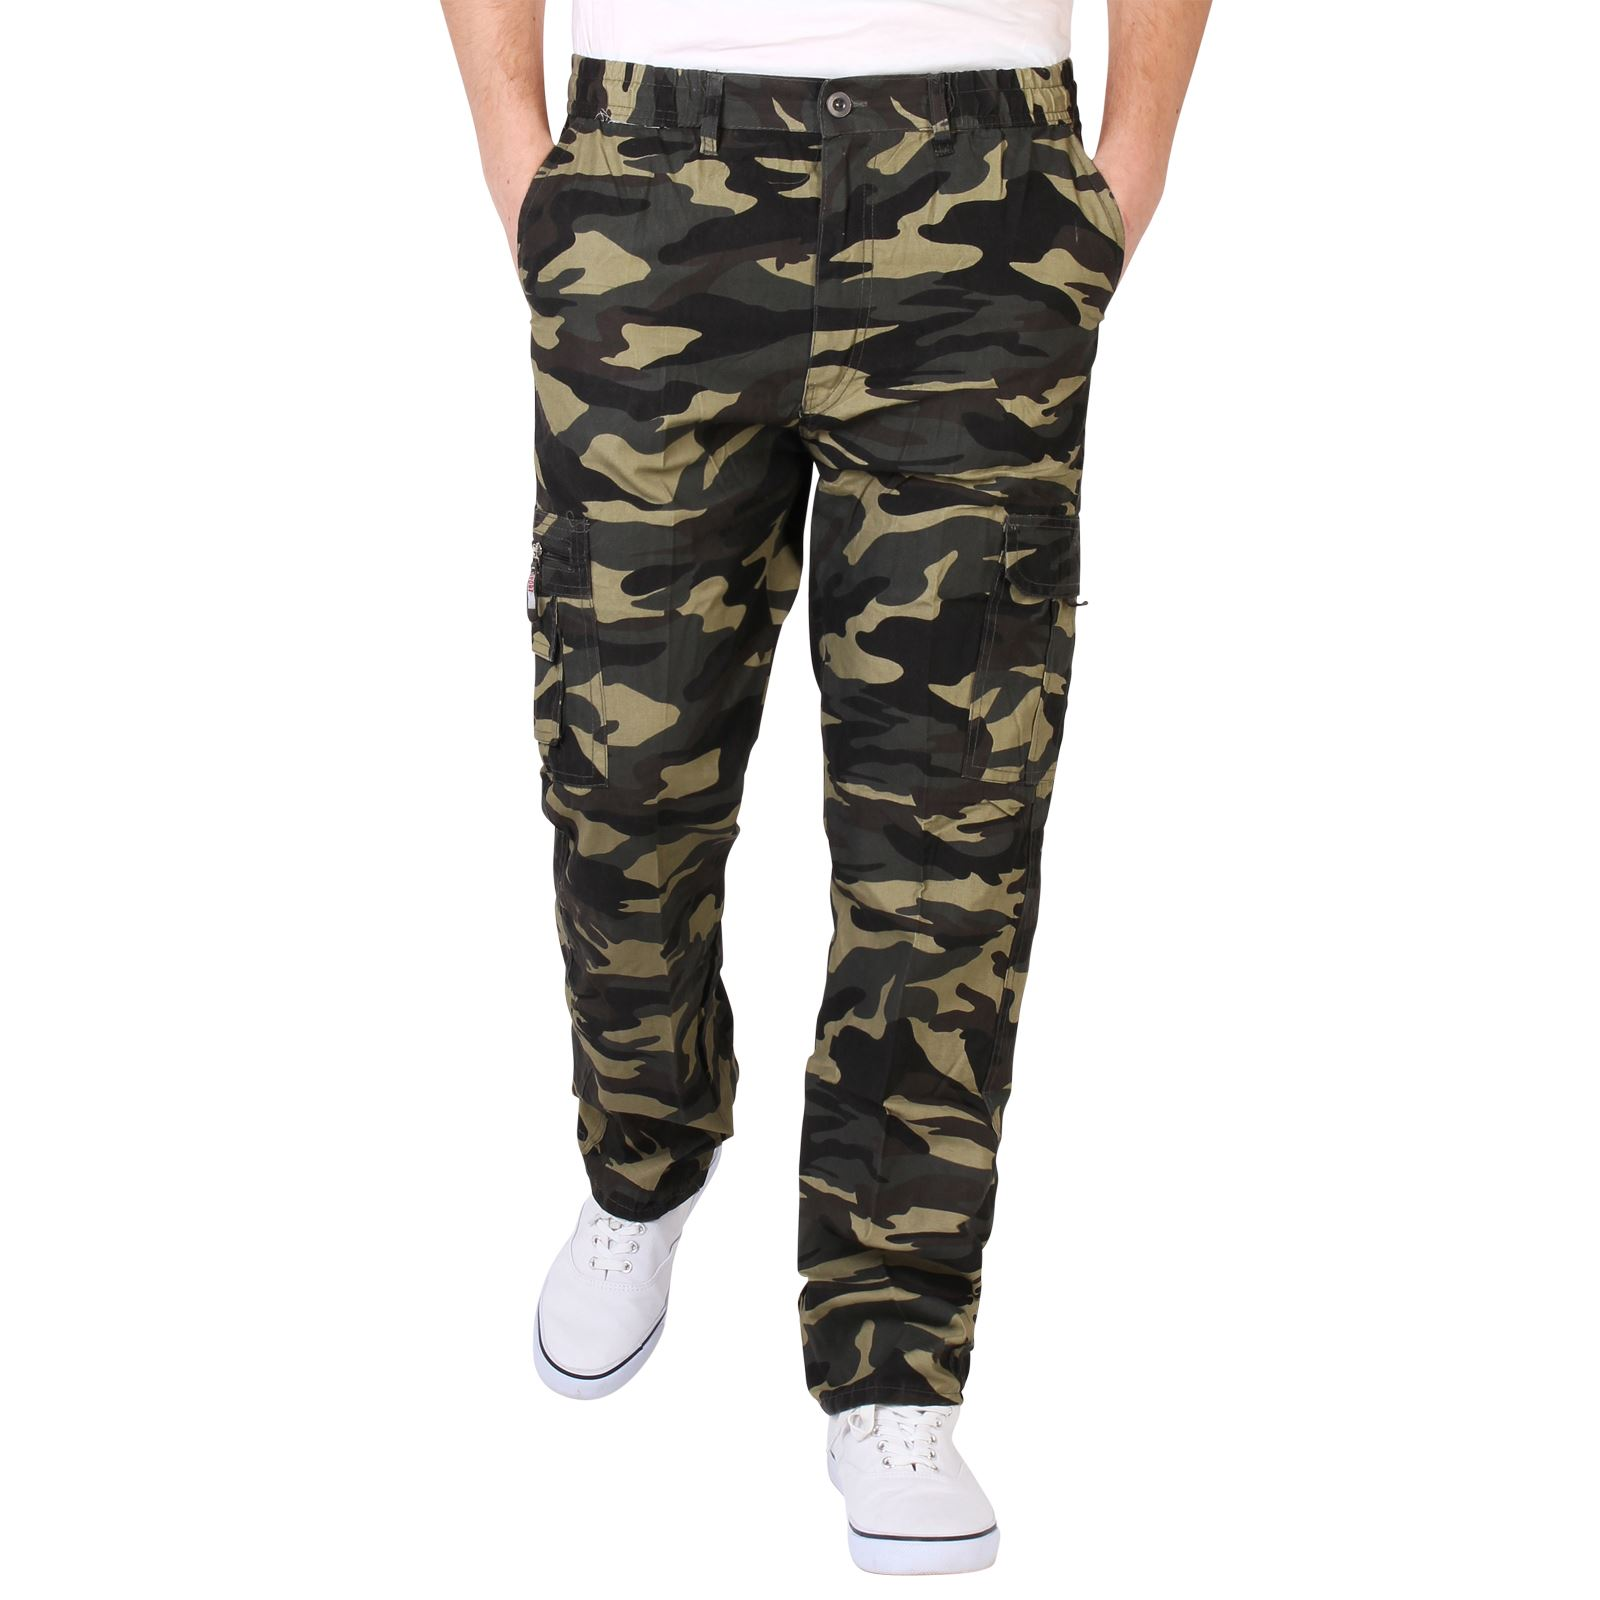 homme pantalon imprim camouflage cargo multi poches style militaire ebay. Black Bedroom Furniture Sets. Home Design Ideas